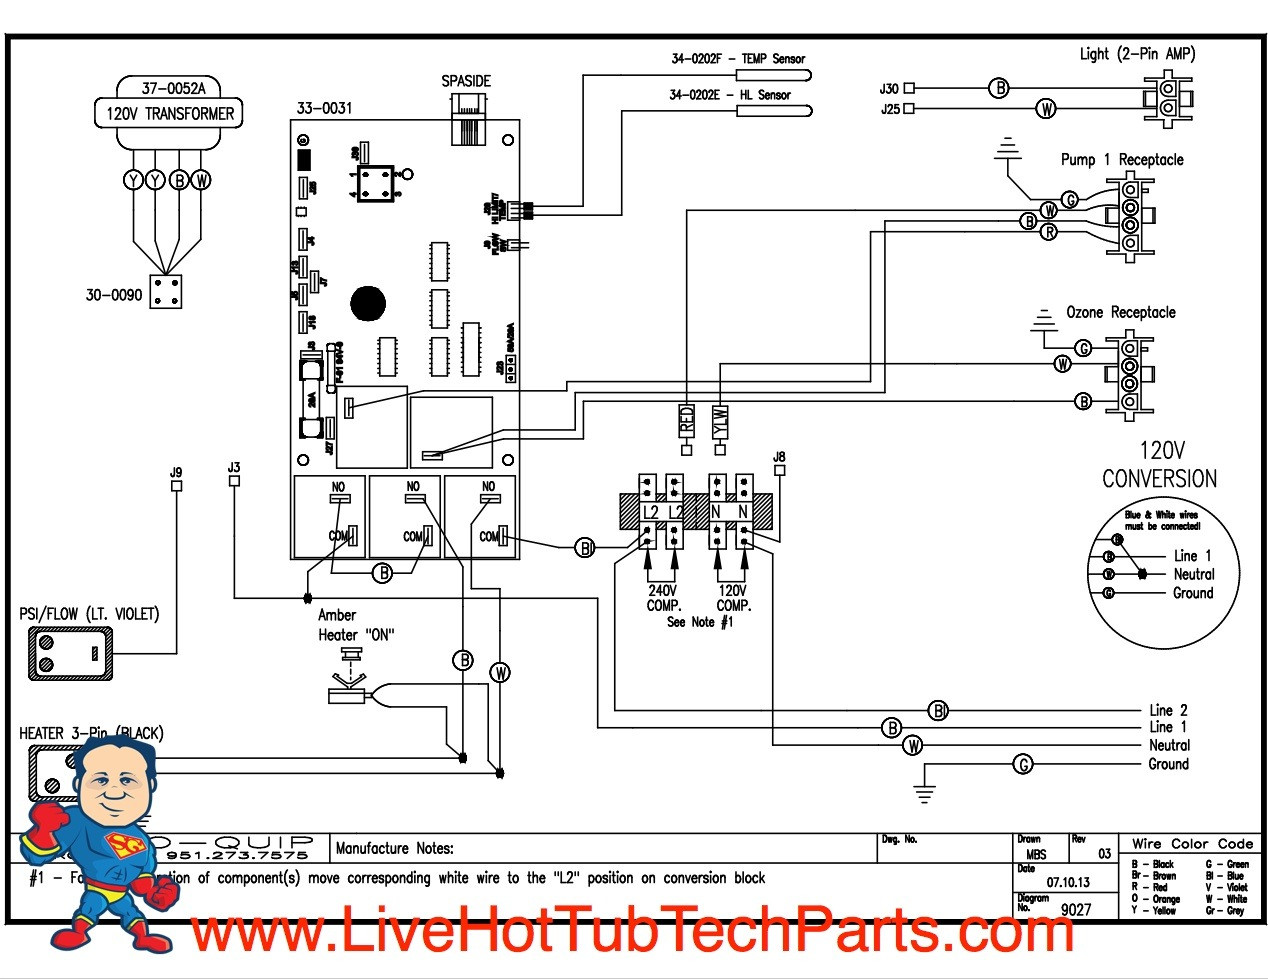 Hydroquip Wiring Diagrams - 2000 Mazda 626 Fuse Box Diagram -  gsxr750.fordwire.warmi.fr | Hydro Quip Wiring Diagram |  | Wiring Diagram Resource